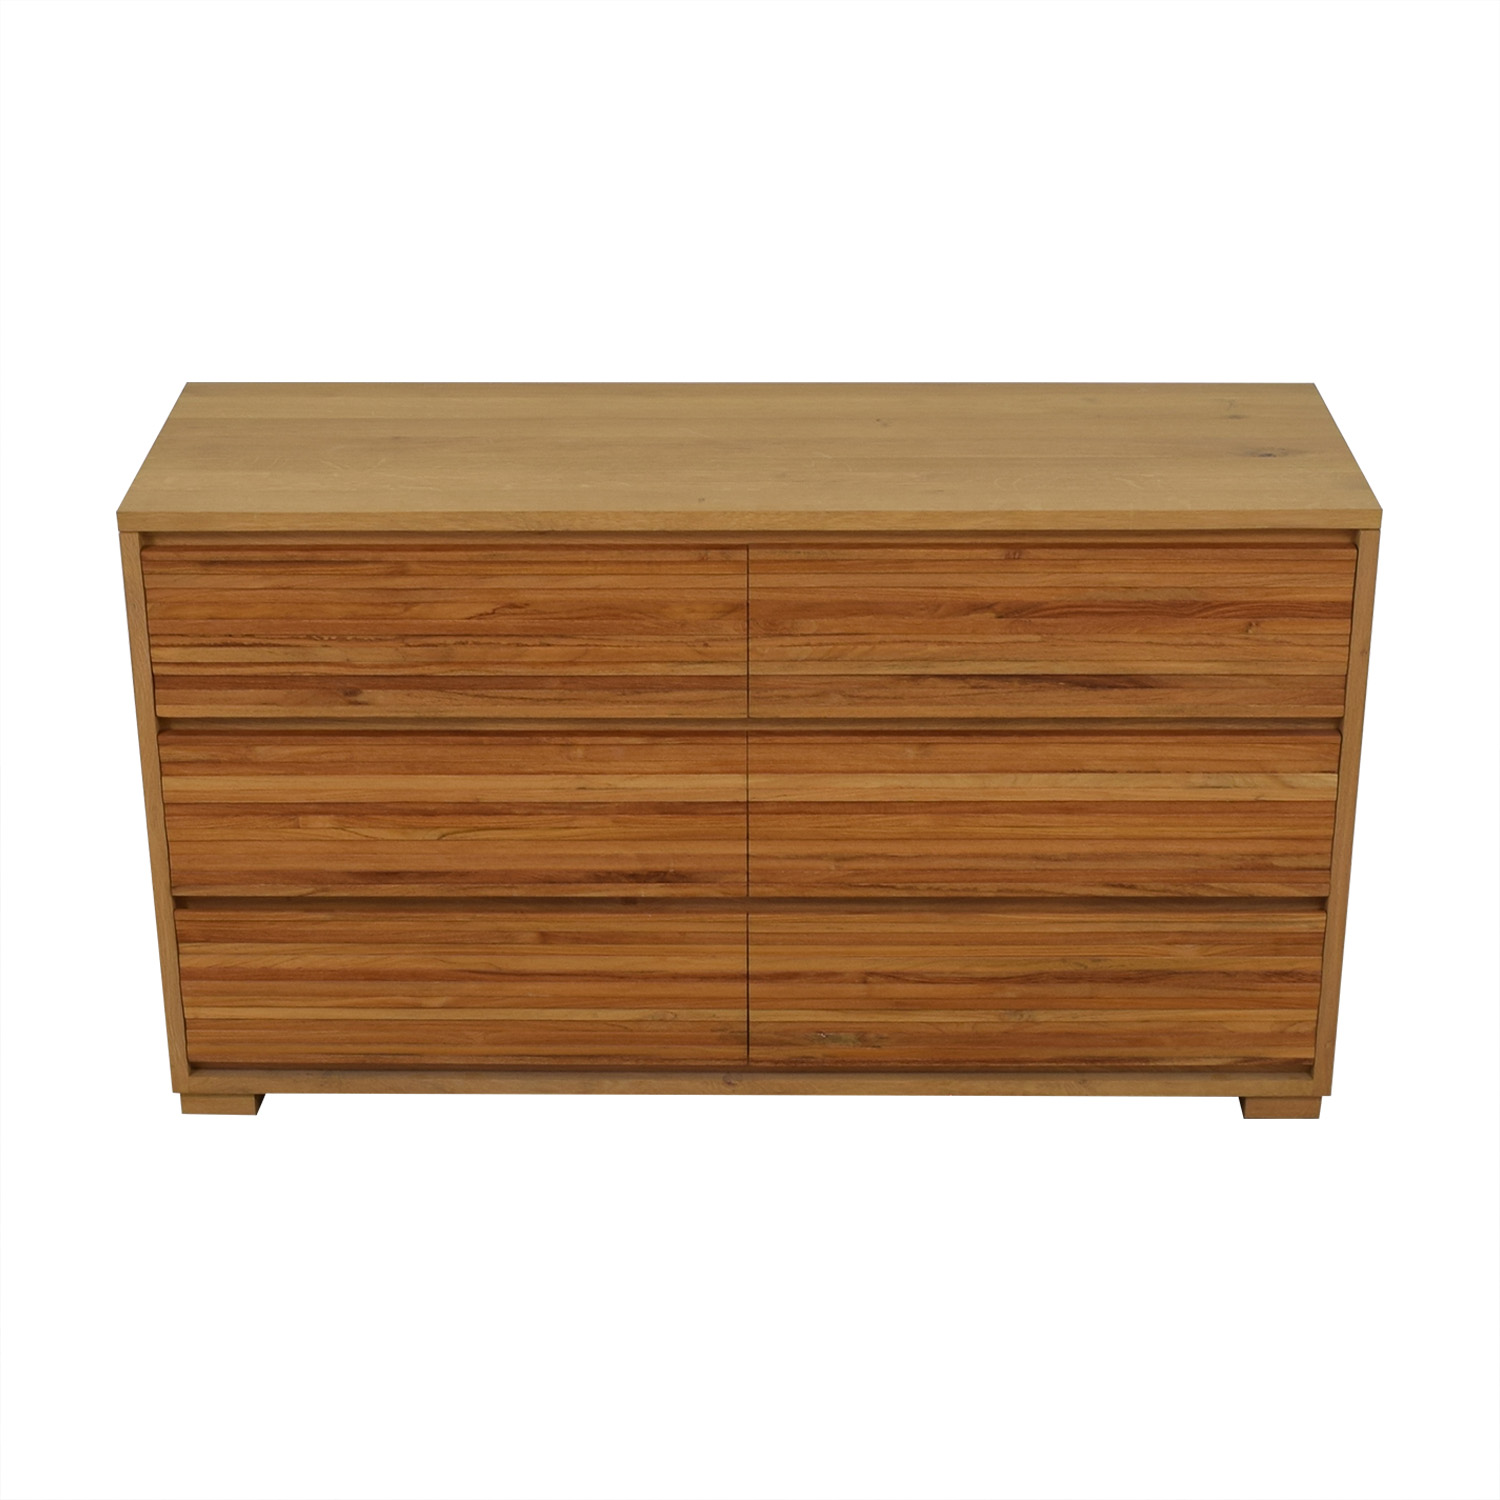 shop Crate & Barrel Sierra Six-Drawer Dresser Crate & Barrel